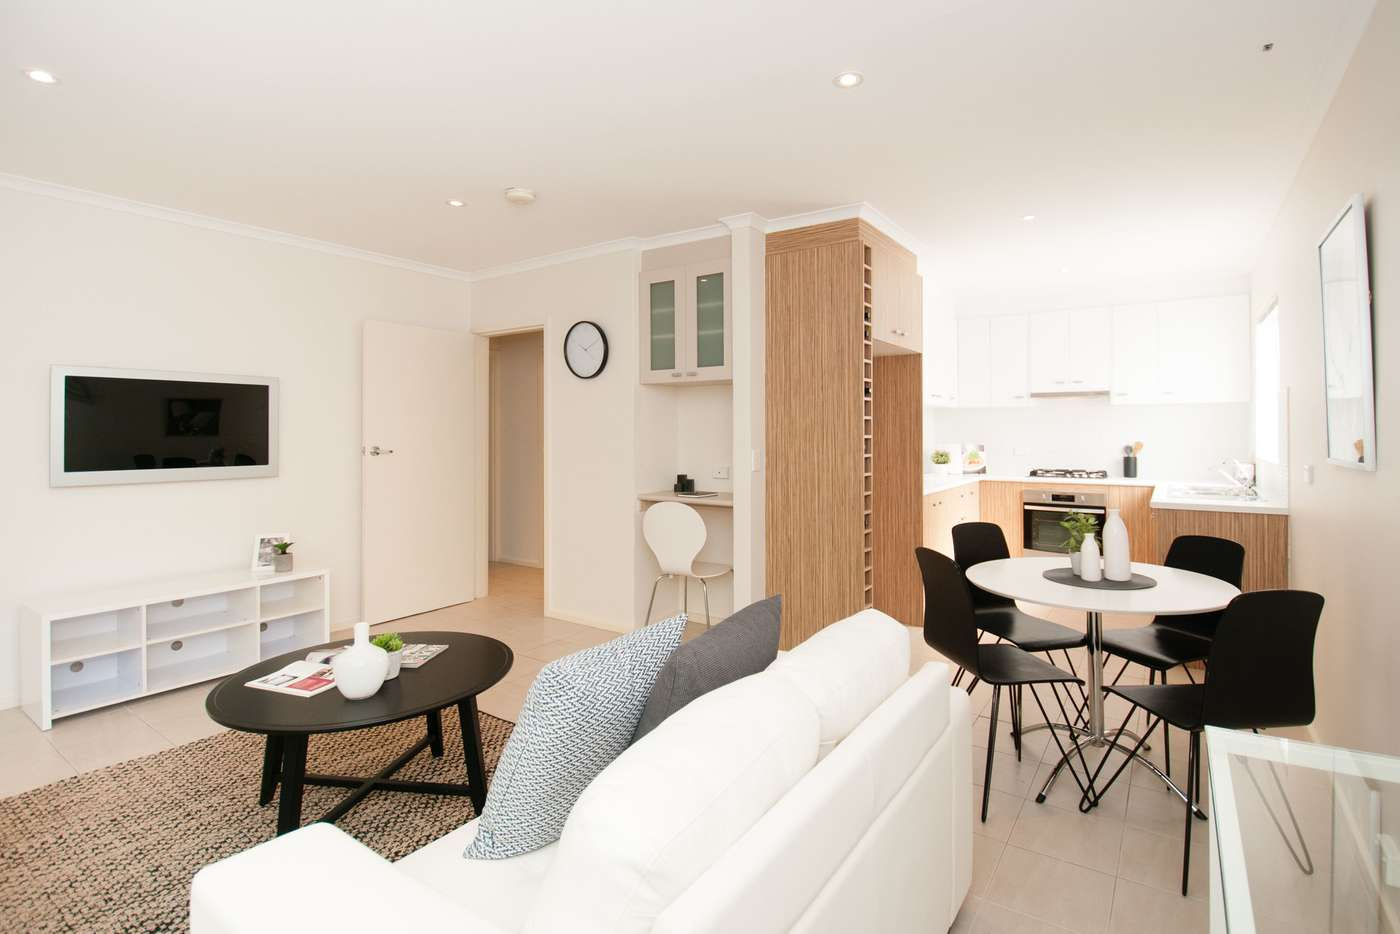 Fifth view of Homely unit listing, 1/30 Bakewell Road, Evandale SA 5069